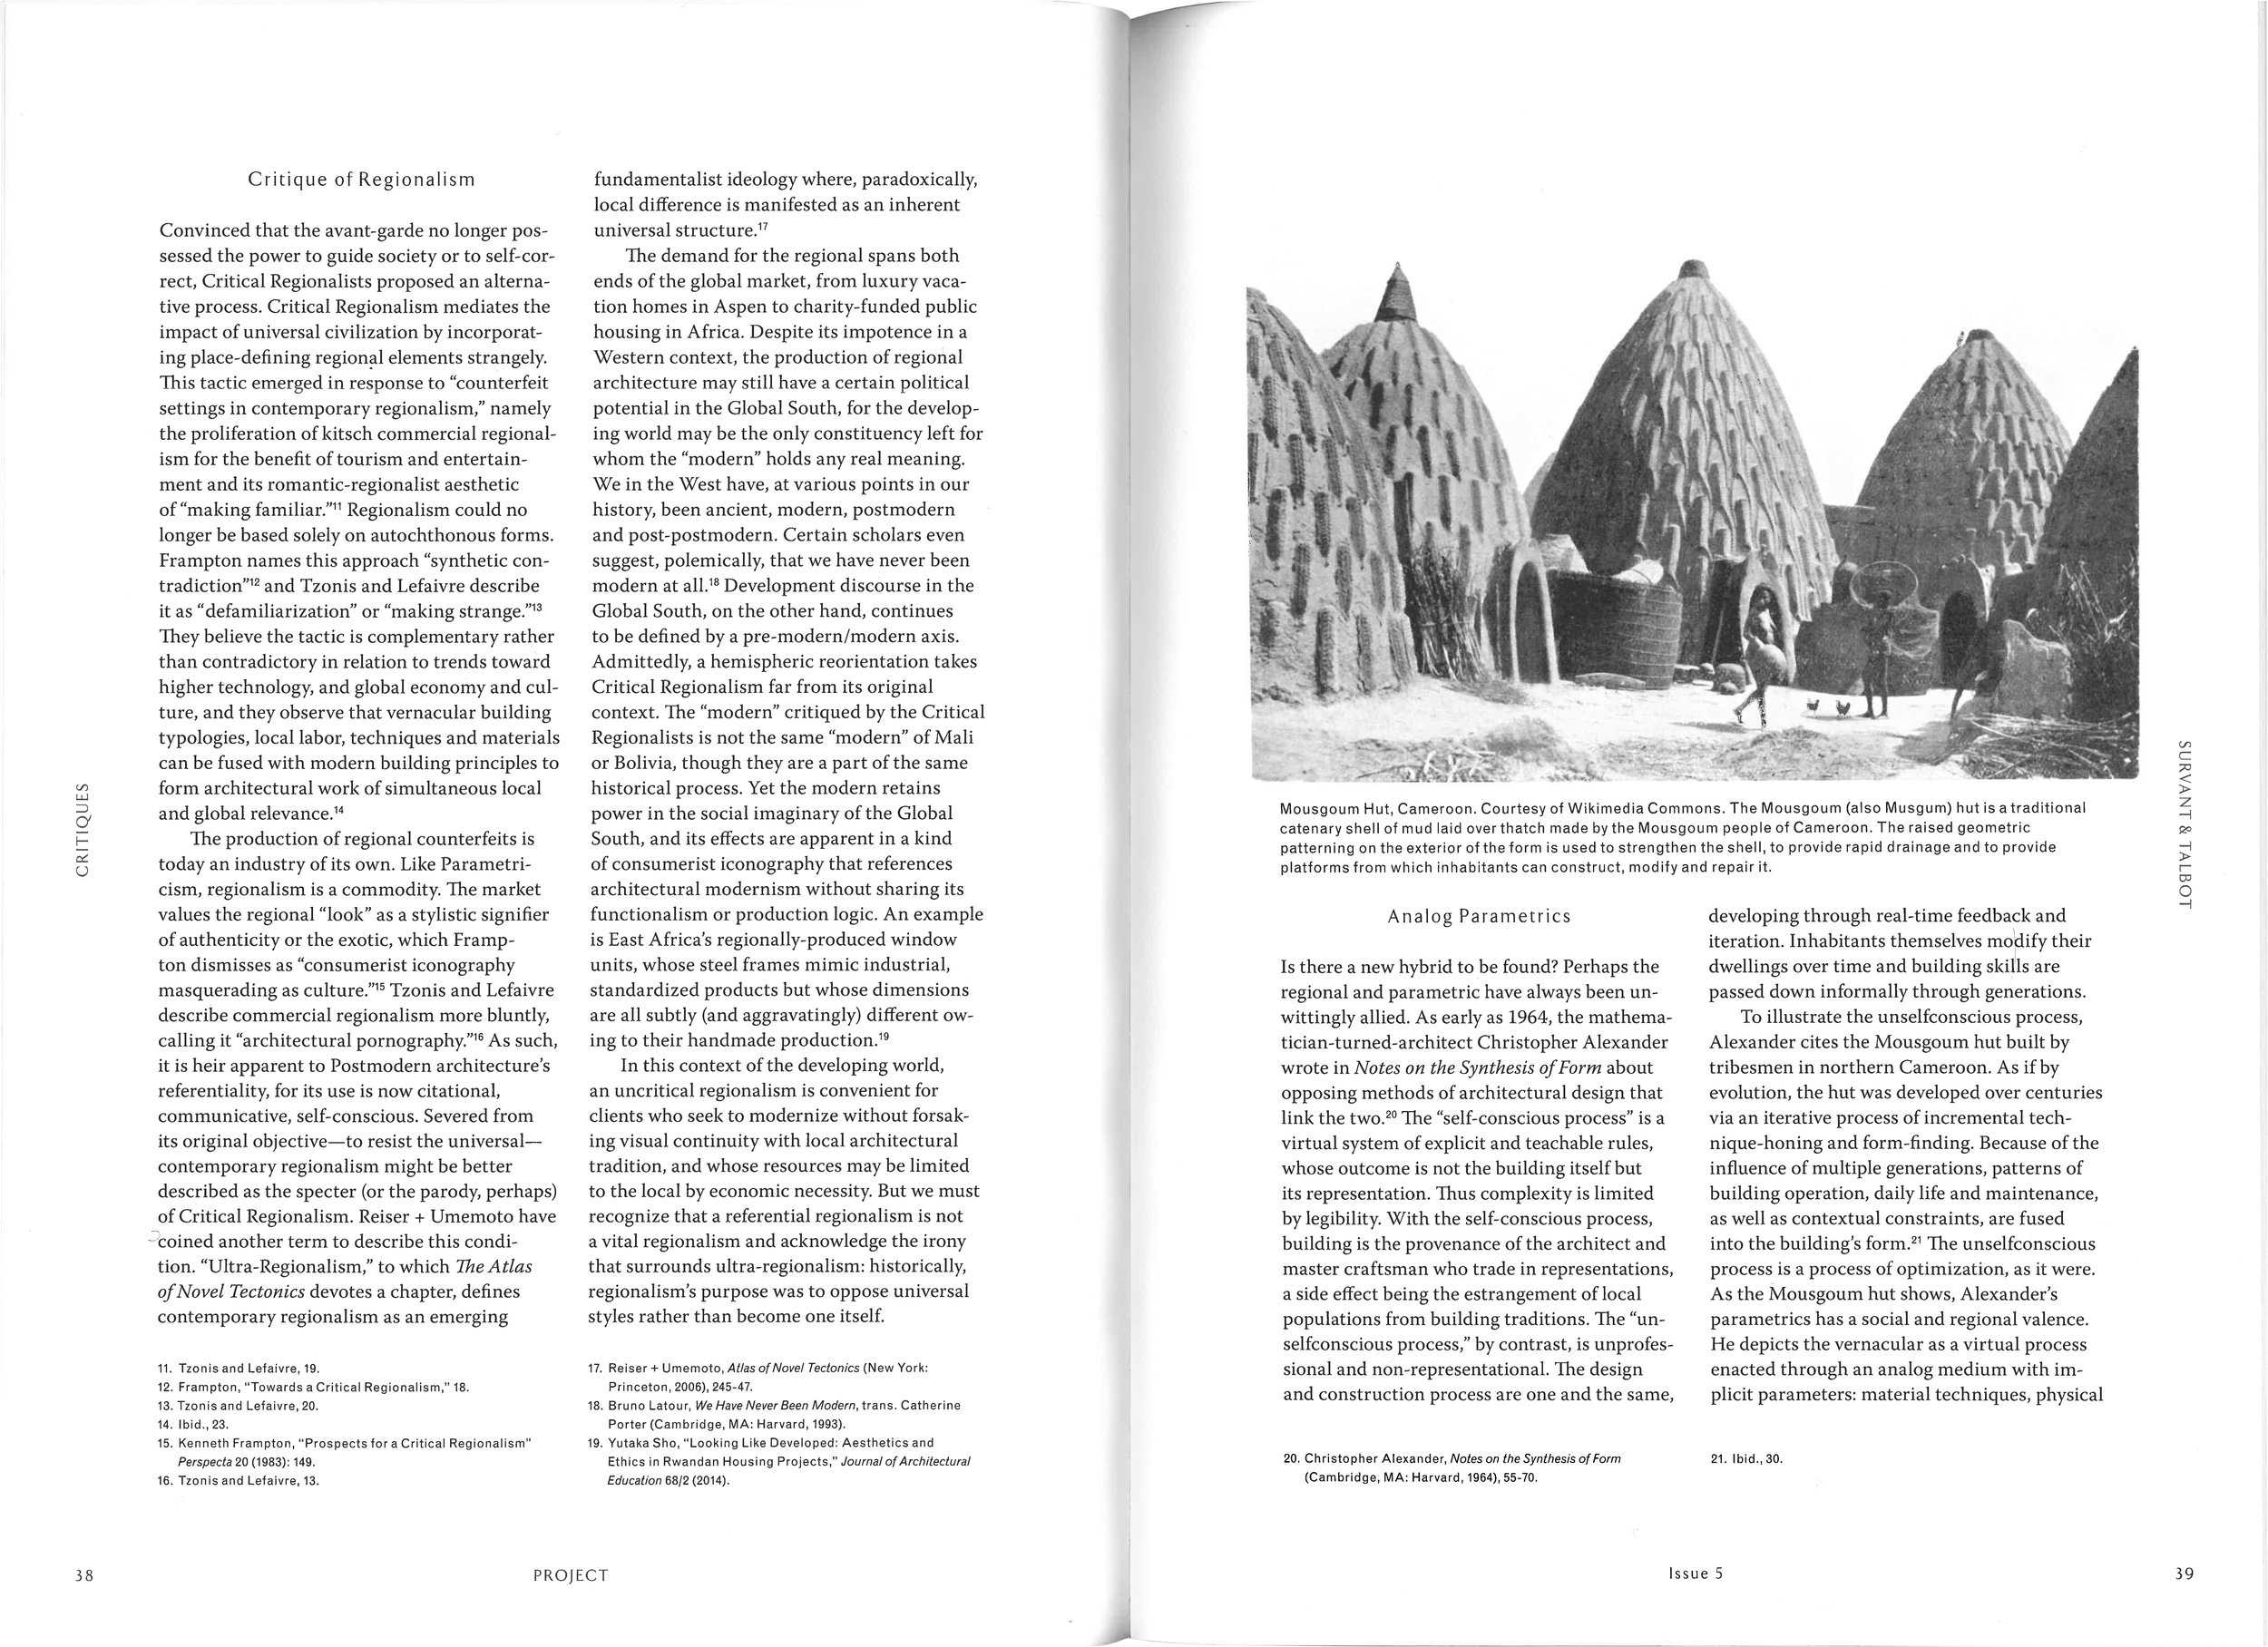 Survant_Spread from Project Journal 05.jpg